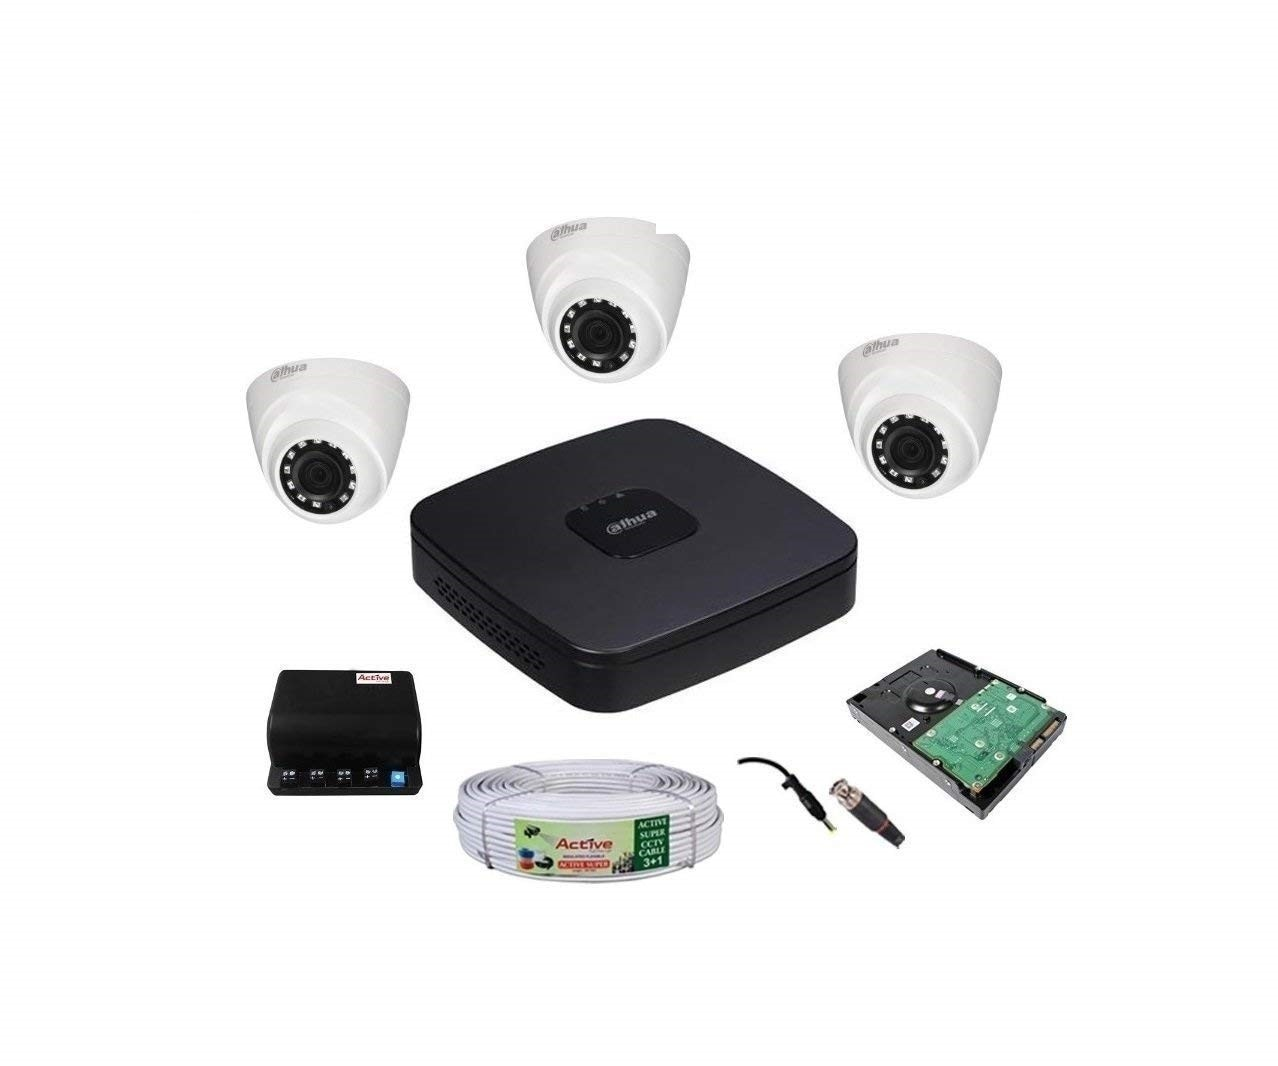 •Dahua FULL HD 2-MP 1080P DVR 4CH 1-Pcs, 1TB SURVELLANCE HDD. •Dahua FULL HD DOME 2-MP 1080P Dome Night Vision Camera 3Pcs. •FEECOM 3+1 Copper Cable, FEECOM Power Supply, BNC 6Pcs, DC 3Pcs. ( Installation is not included.) •2 Years Seller Warranty Of Camera & DVR. 3- Year Warranty Of HDD & 1-YEAR Power Supply. (BNC, DC, Adapter, Mouse, Cable, Physical Damaged, Burned & short circuited Products are not Cover In Warranty (as per company norms) & Installation Services are Not Include. ( SOLD & FULLFILLMENT BY FEEDLINE COMMUNICATIONS )